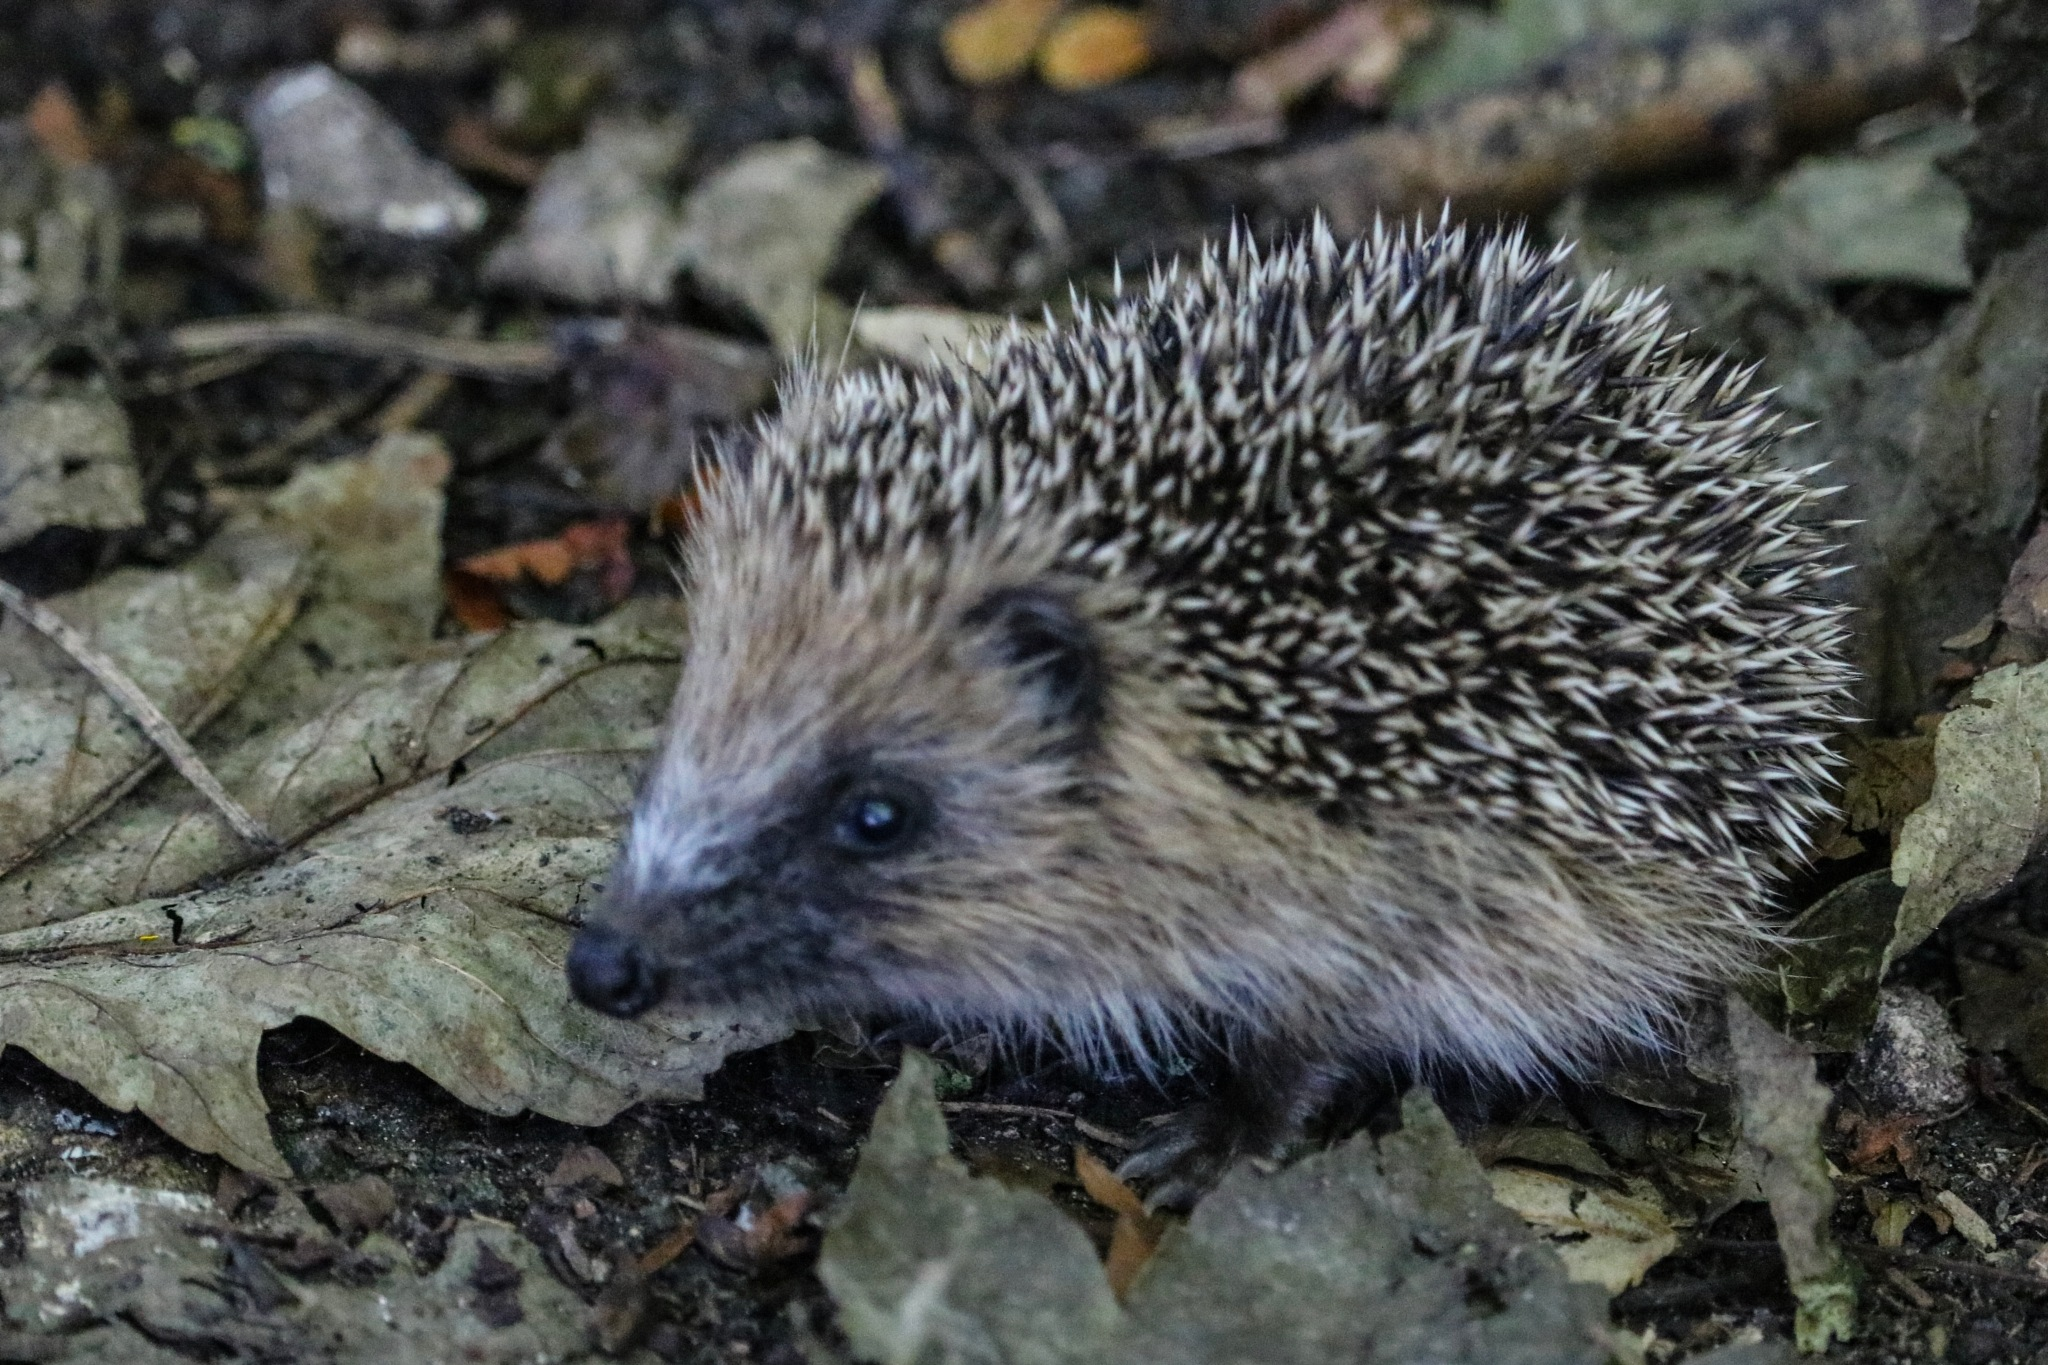 Lonesome baby hedgehog by Nicki Fothergill